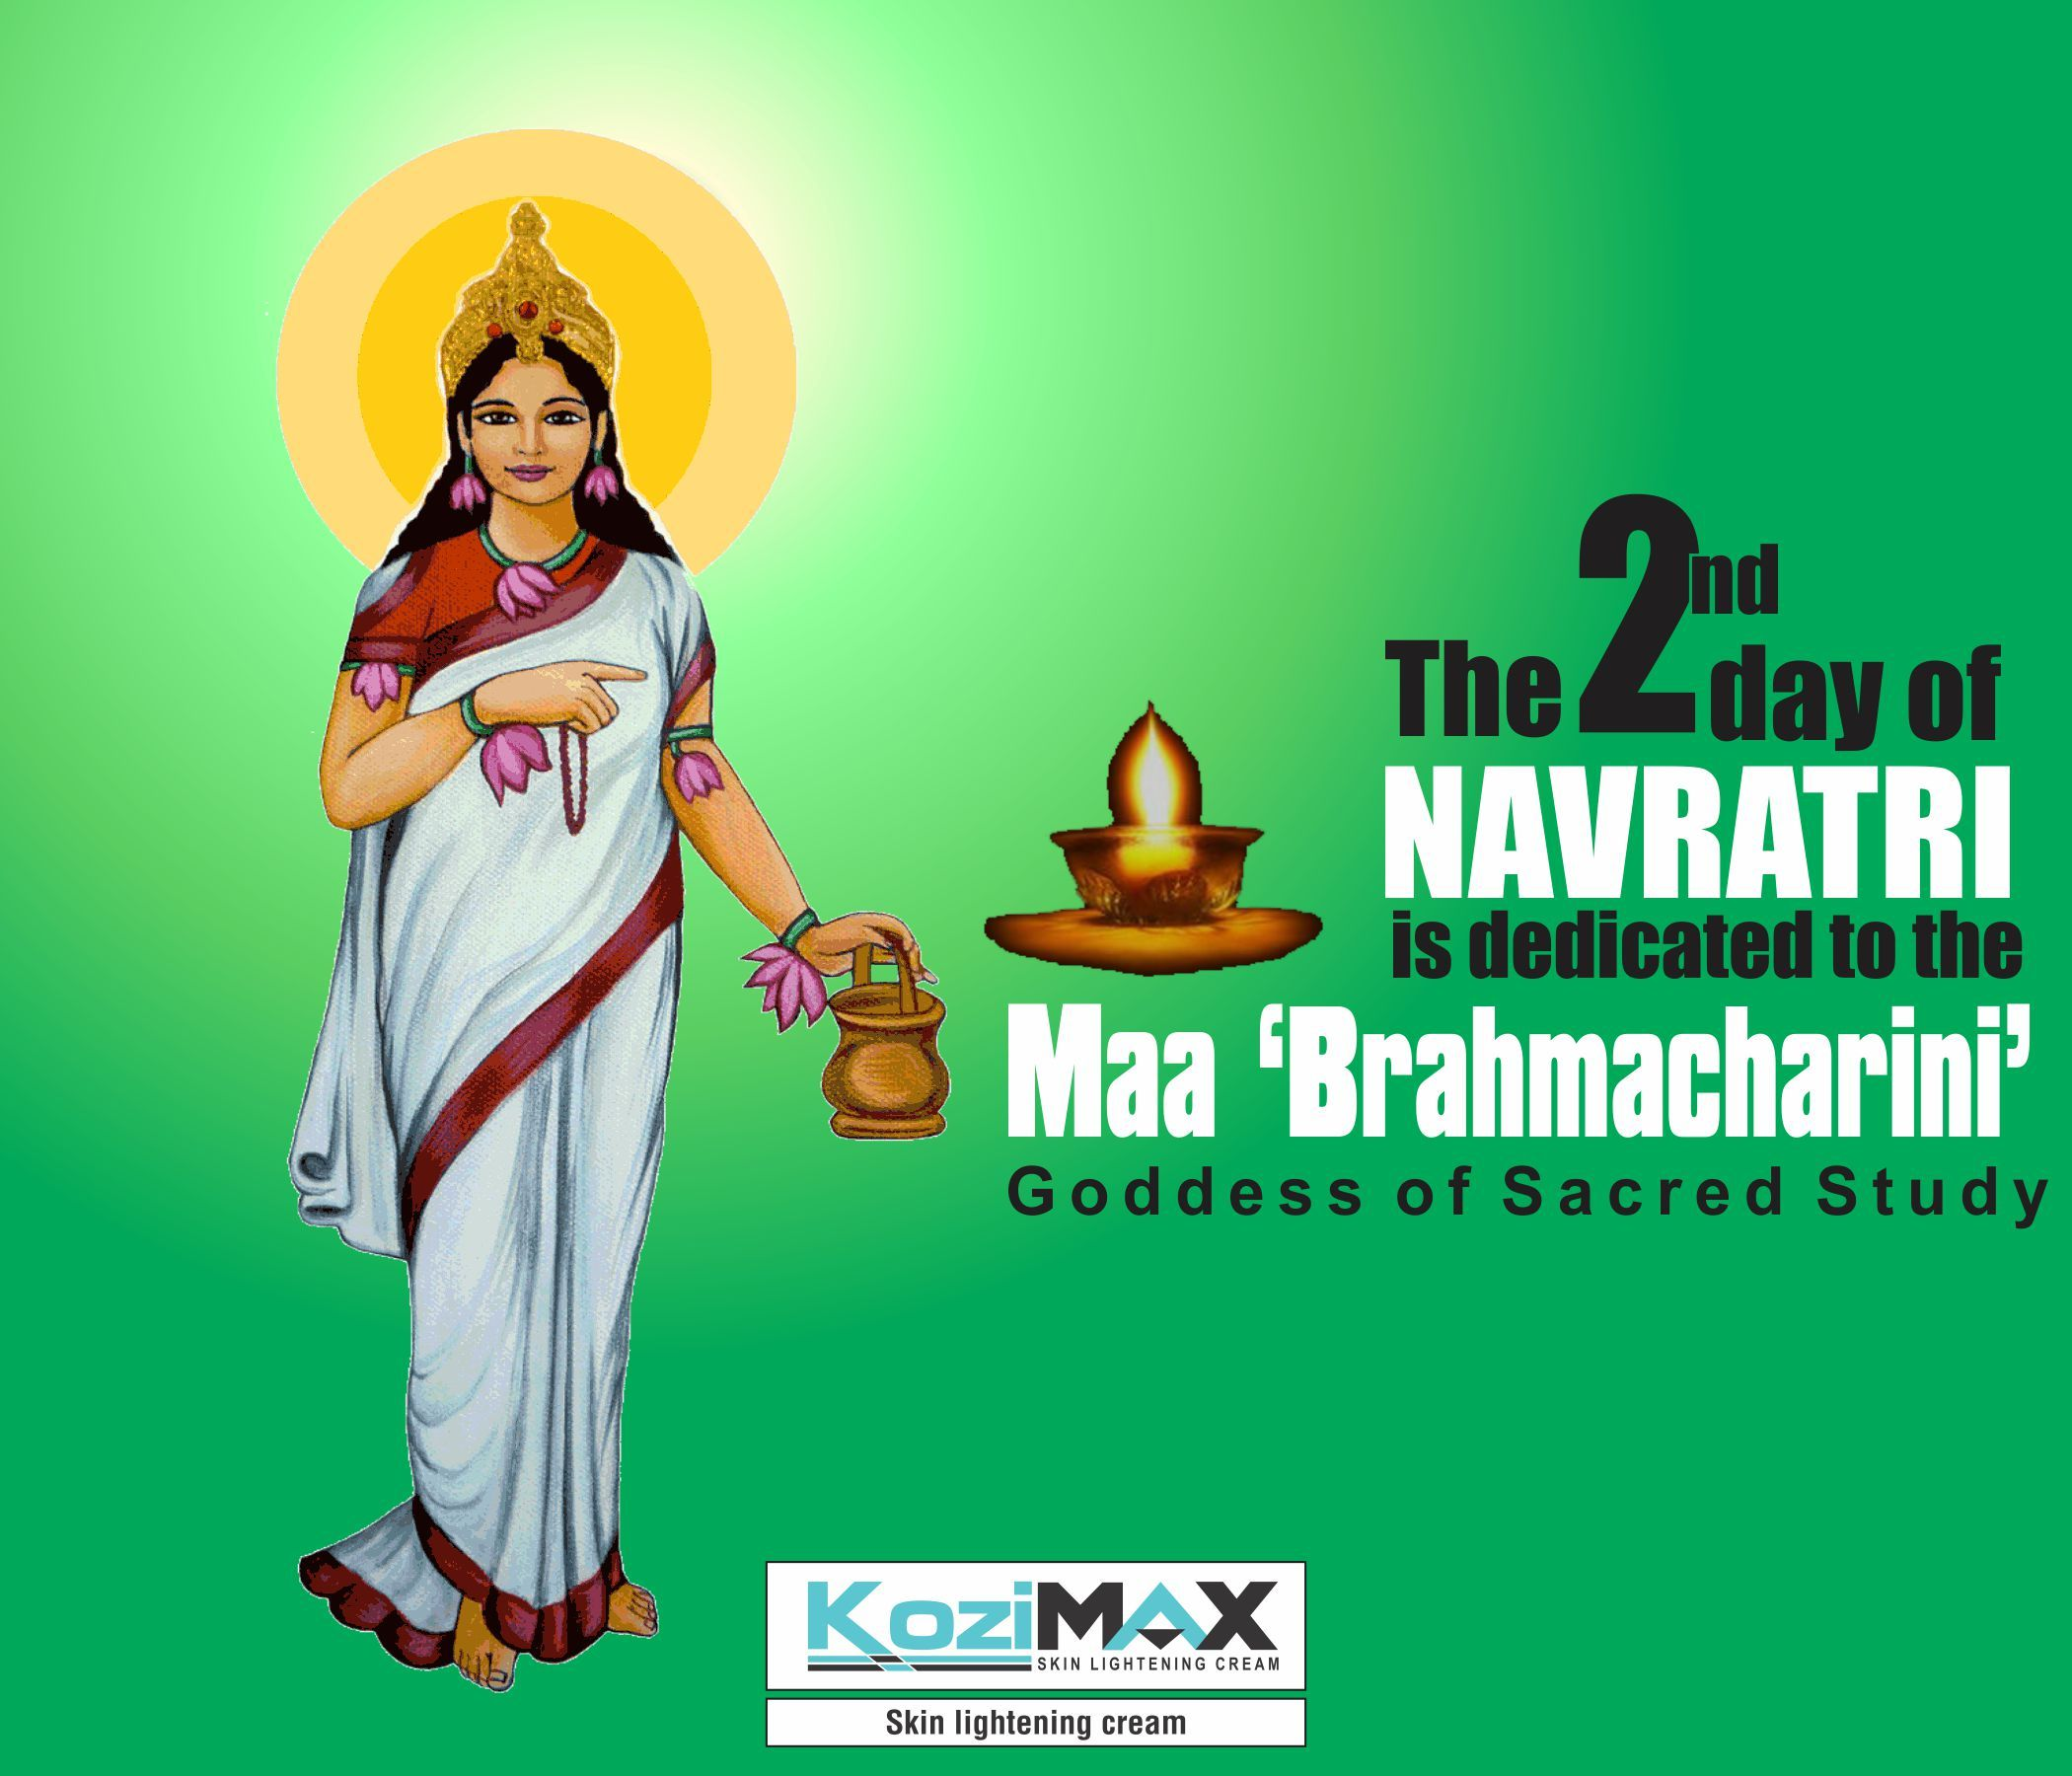 Navratri 2nd Day Wishes Twitter thumbnail